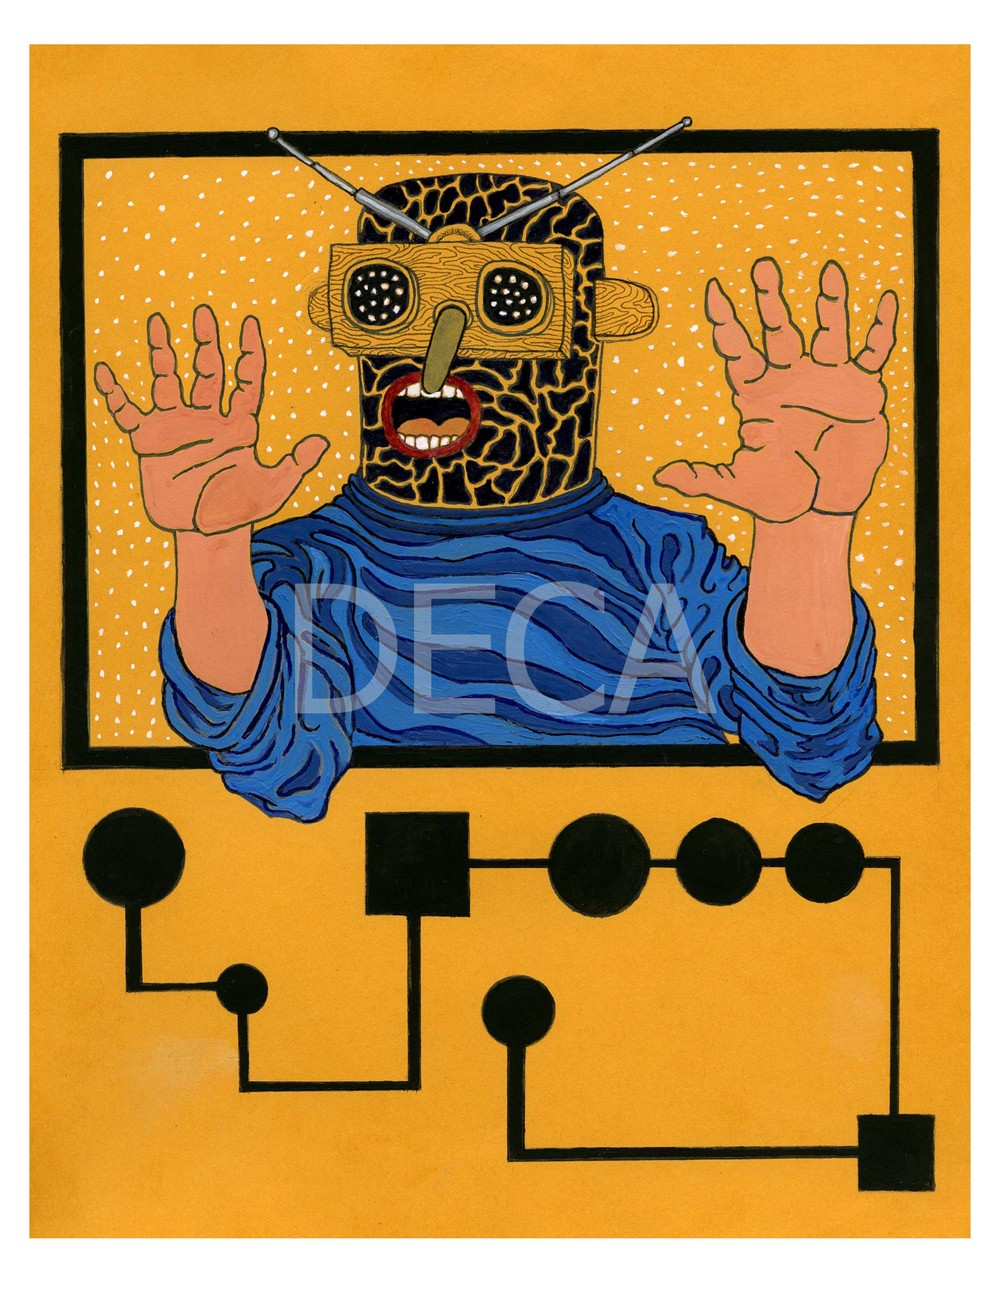 TV Repair Man by Jason Herr - SOLD